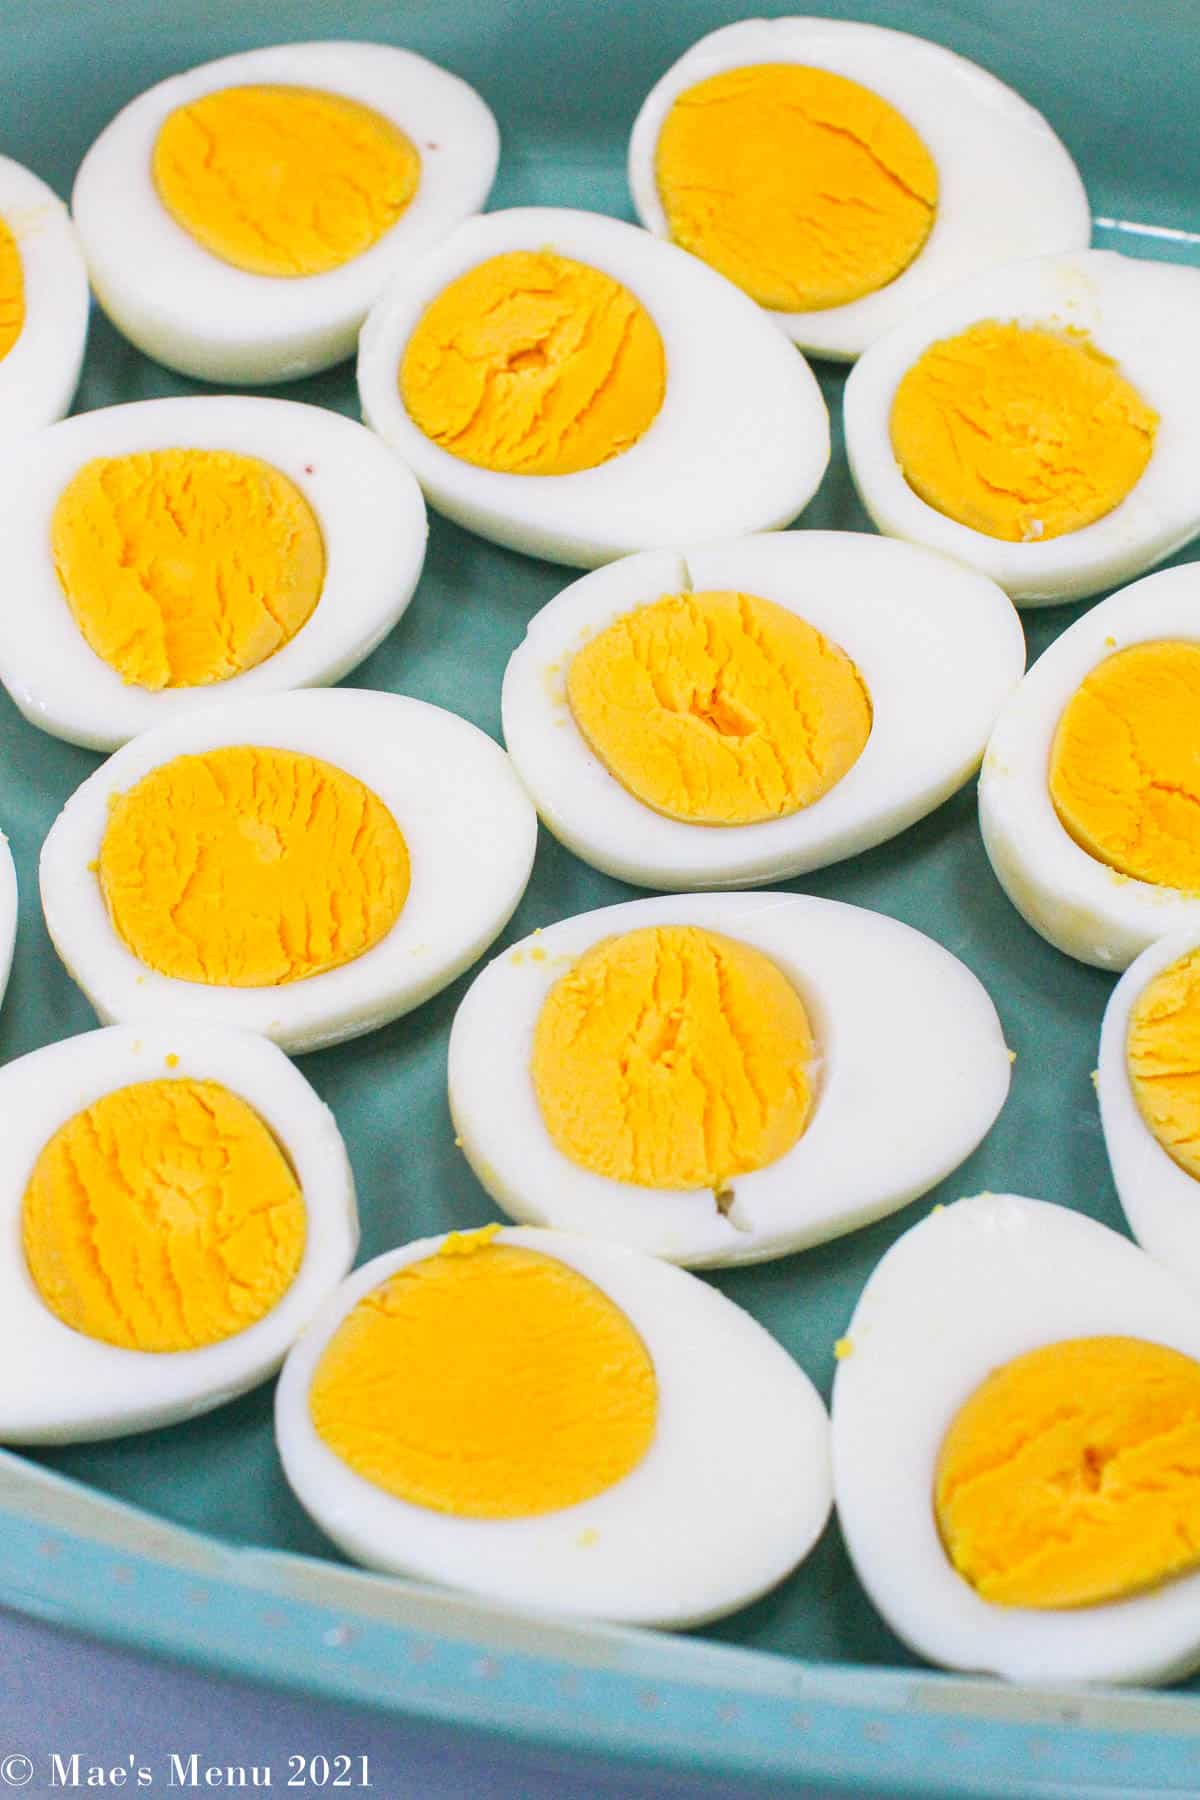 A blue plate of hard-boiled eggs, peeled and cut in half